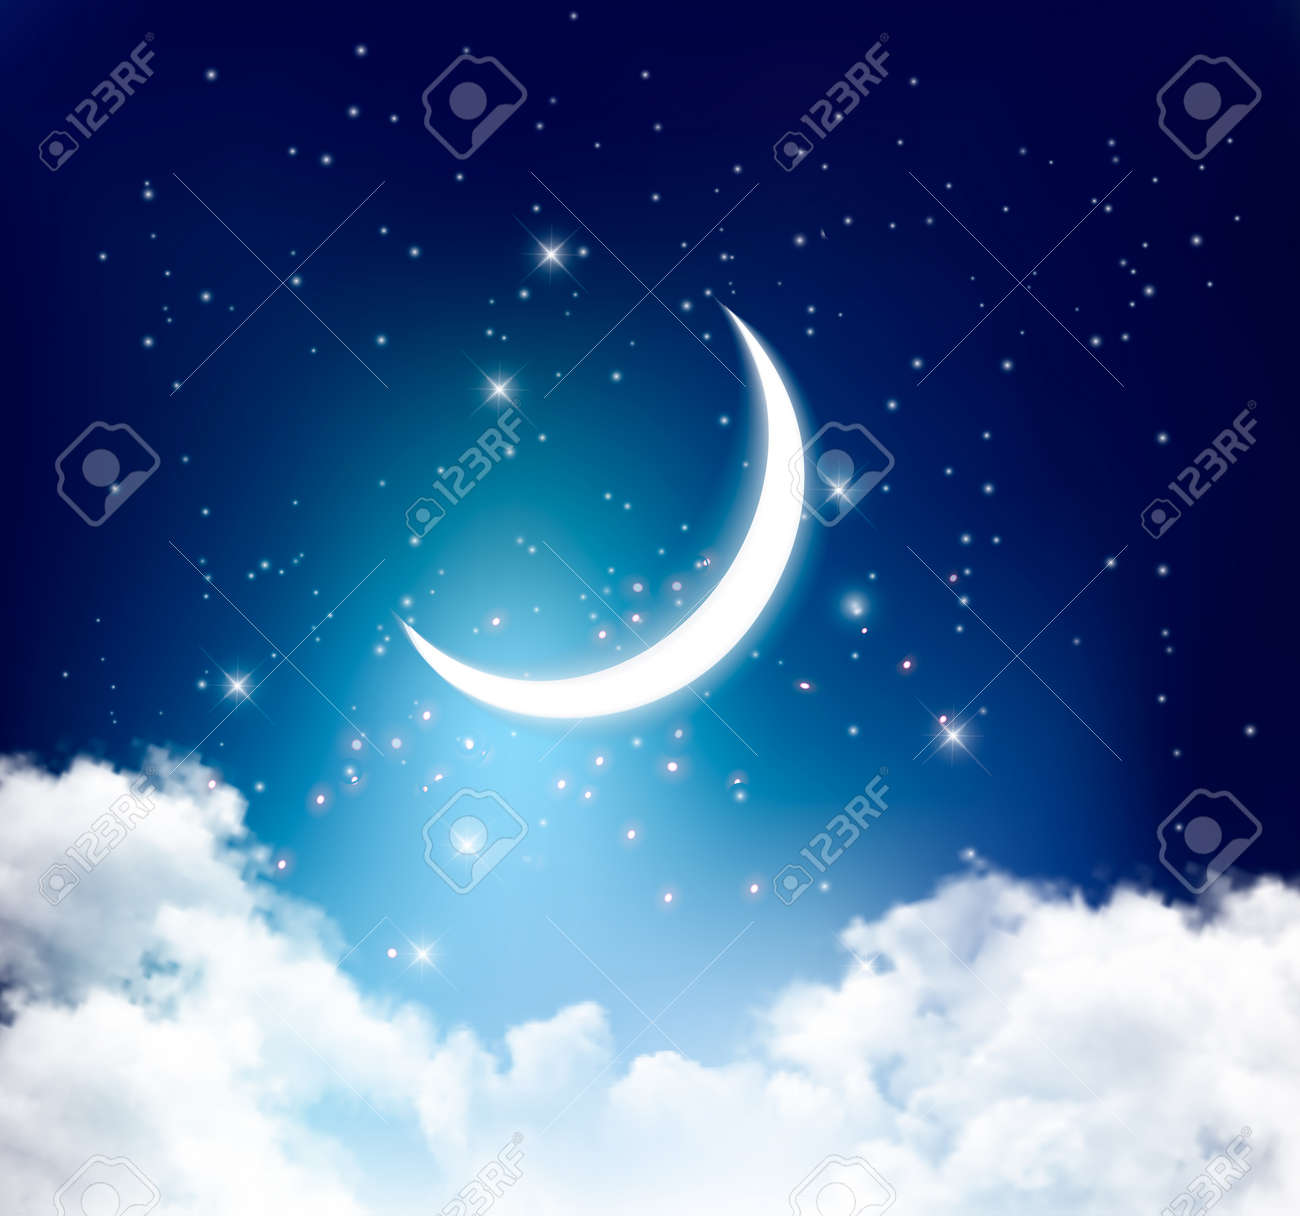 Night sky background with with crescent moon, clouds and stars. Vector - 61544144